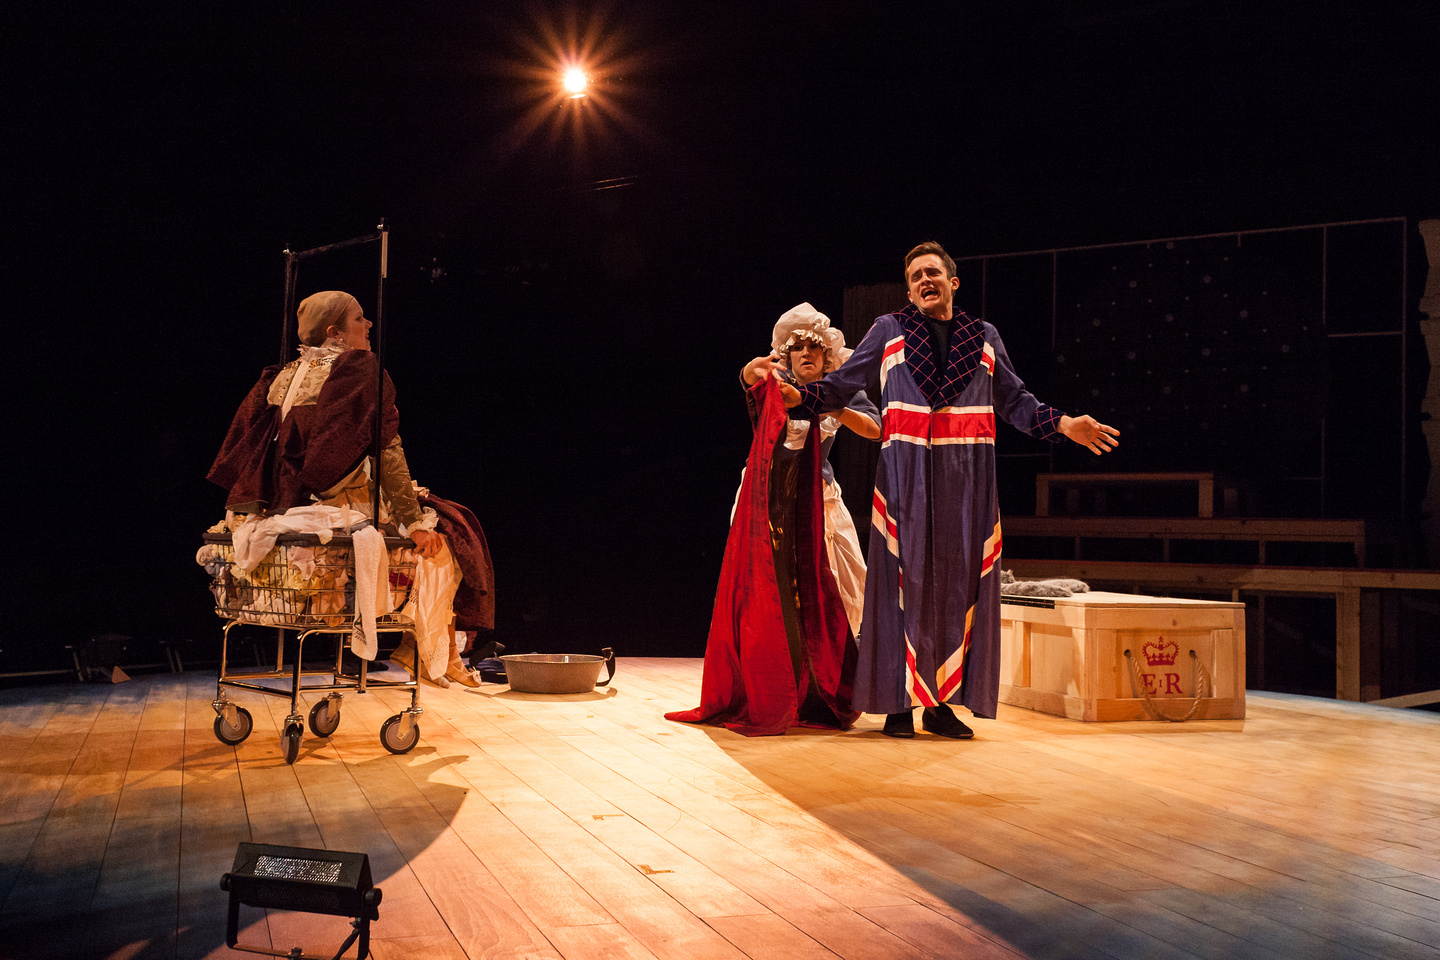 The laundress Tilly Boom (Sarah Halford) arouses Archibishop Whitgift (Brian Smolin) and Elizabeth (Regan Linton) by dressing them in their symbols of power.